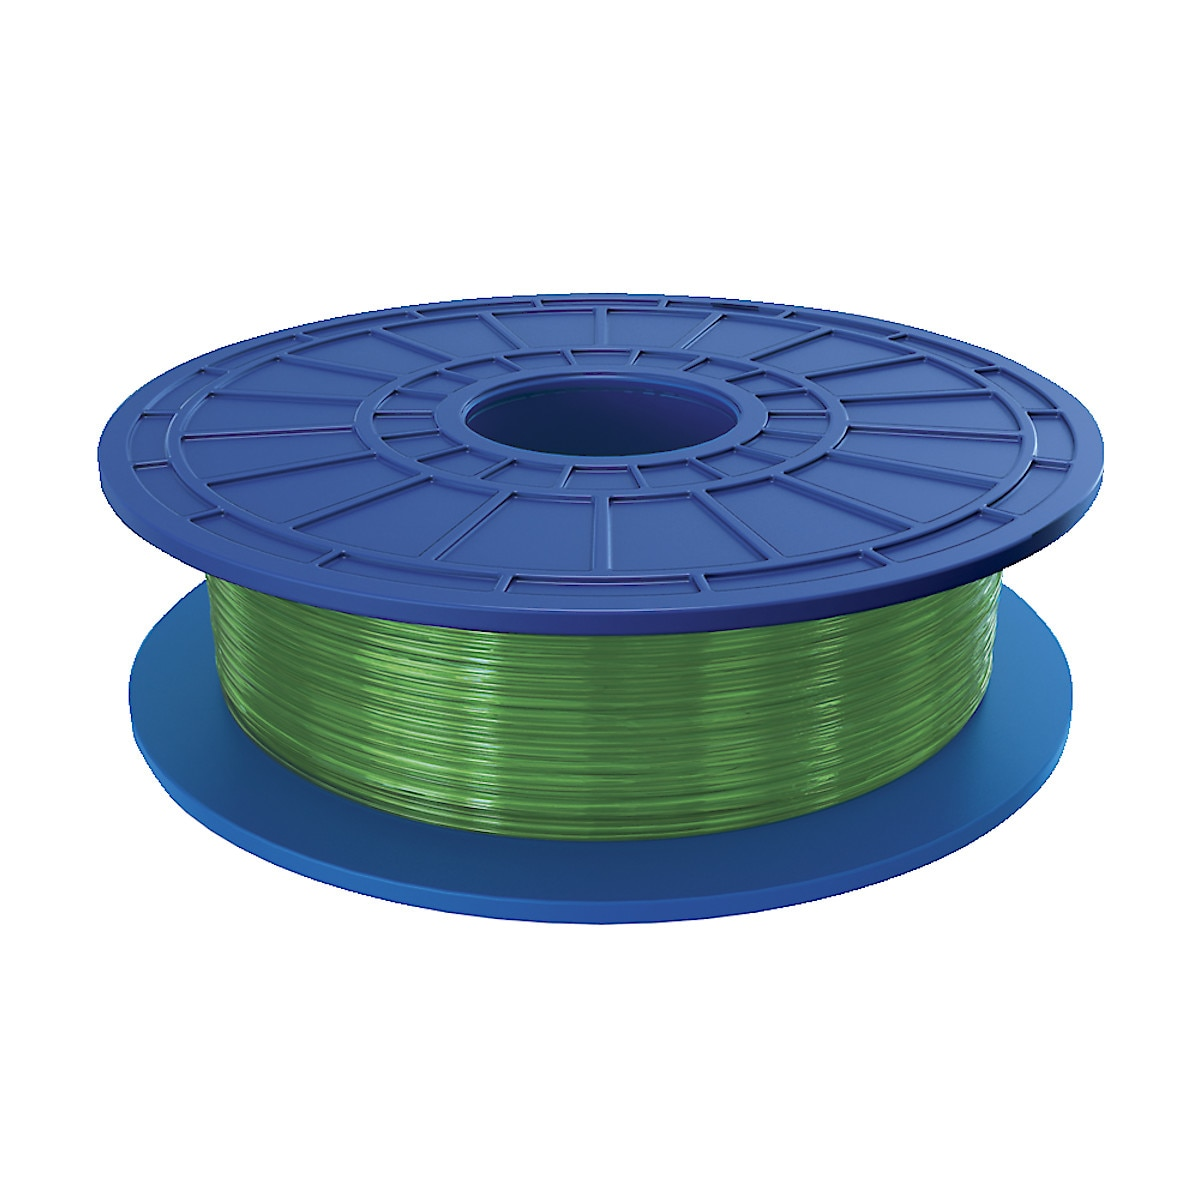 PLA Filament for Dremel 3D Printers